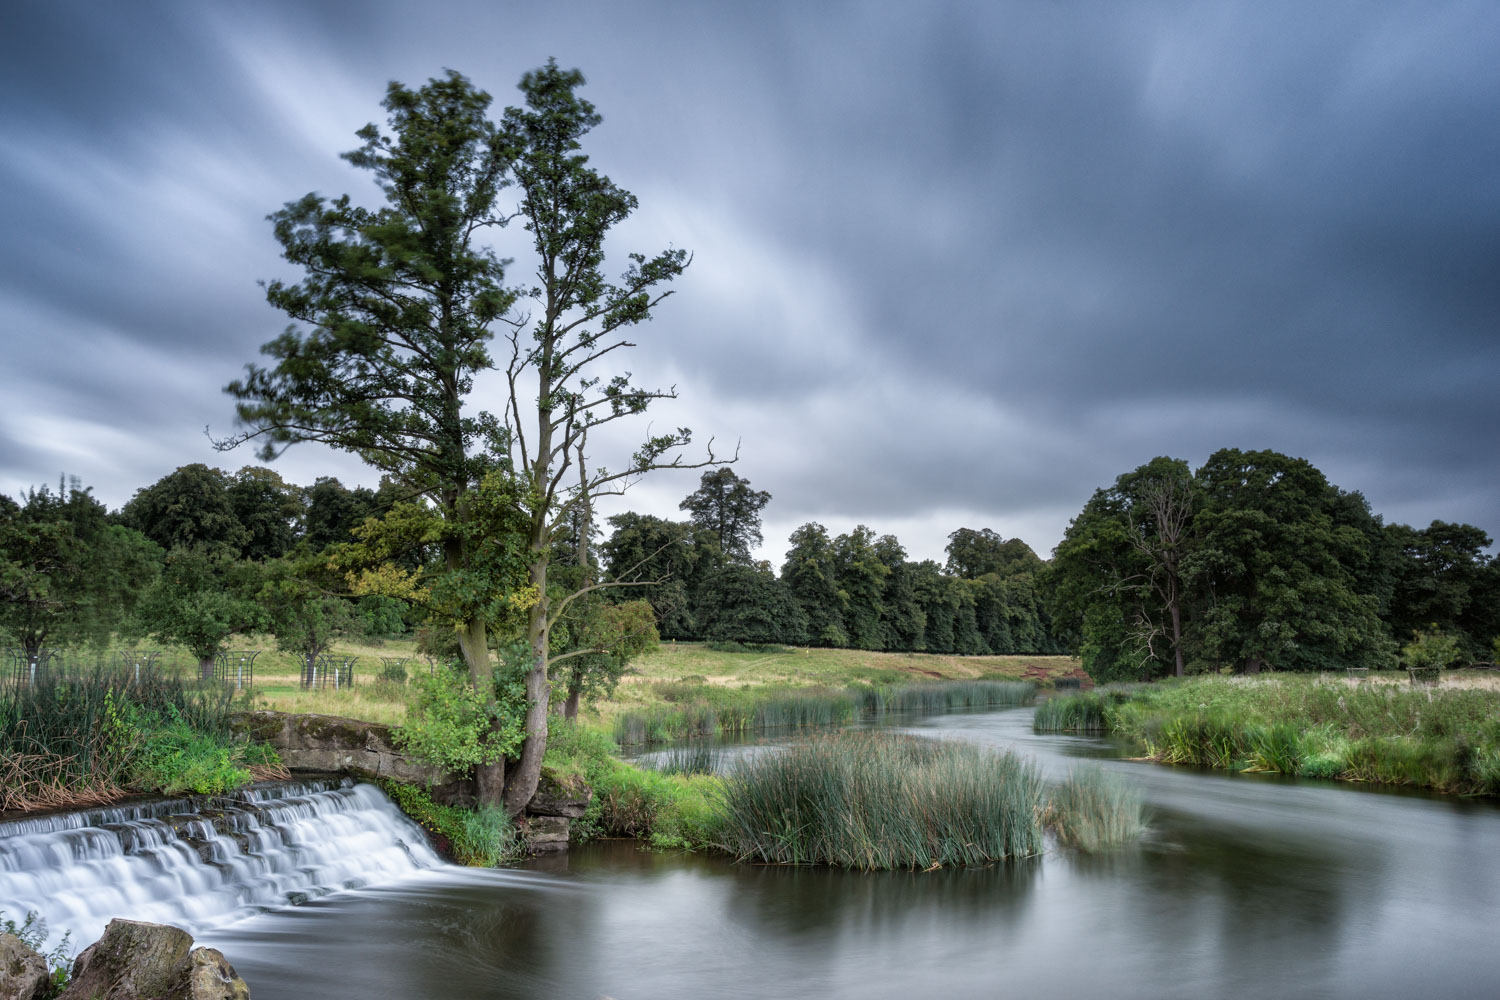 Charlecote weir with the Little Stopper ND filter